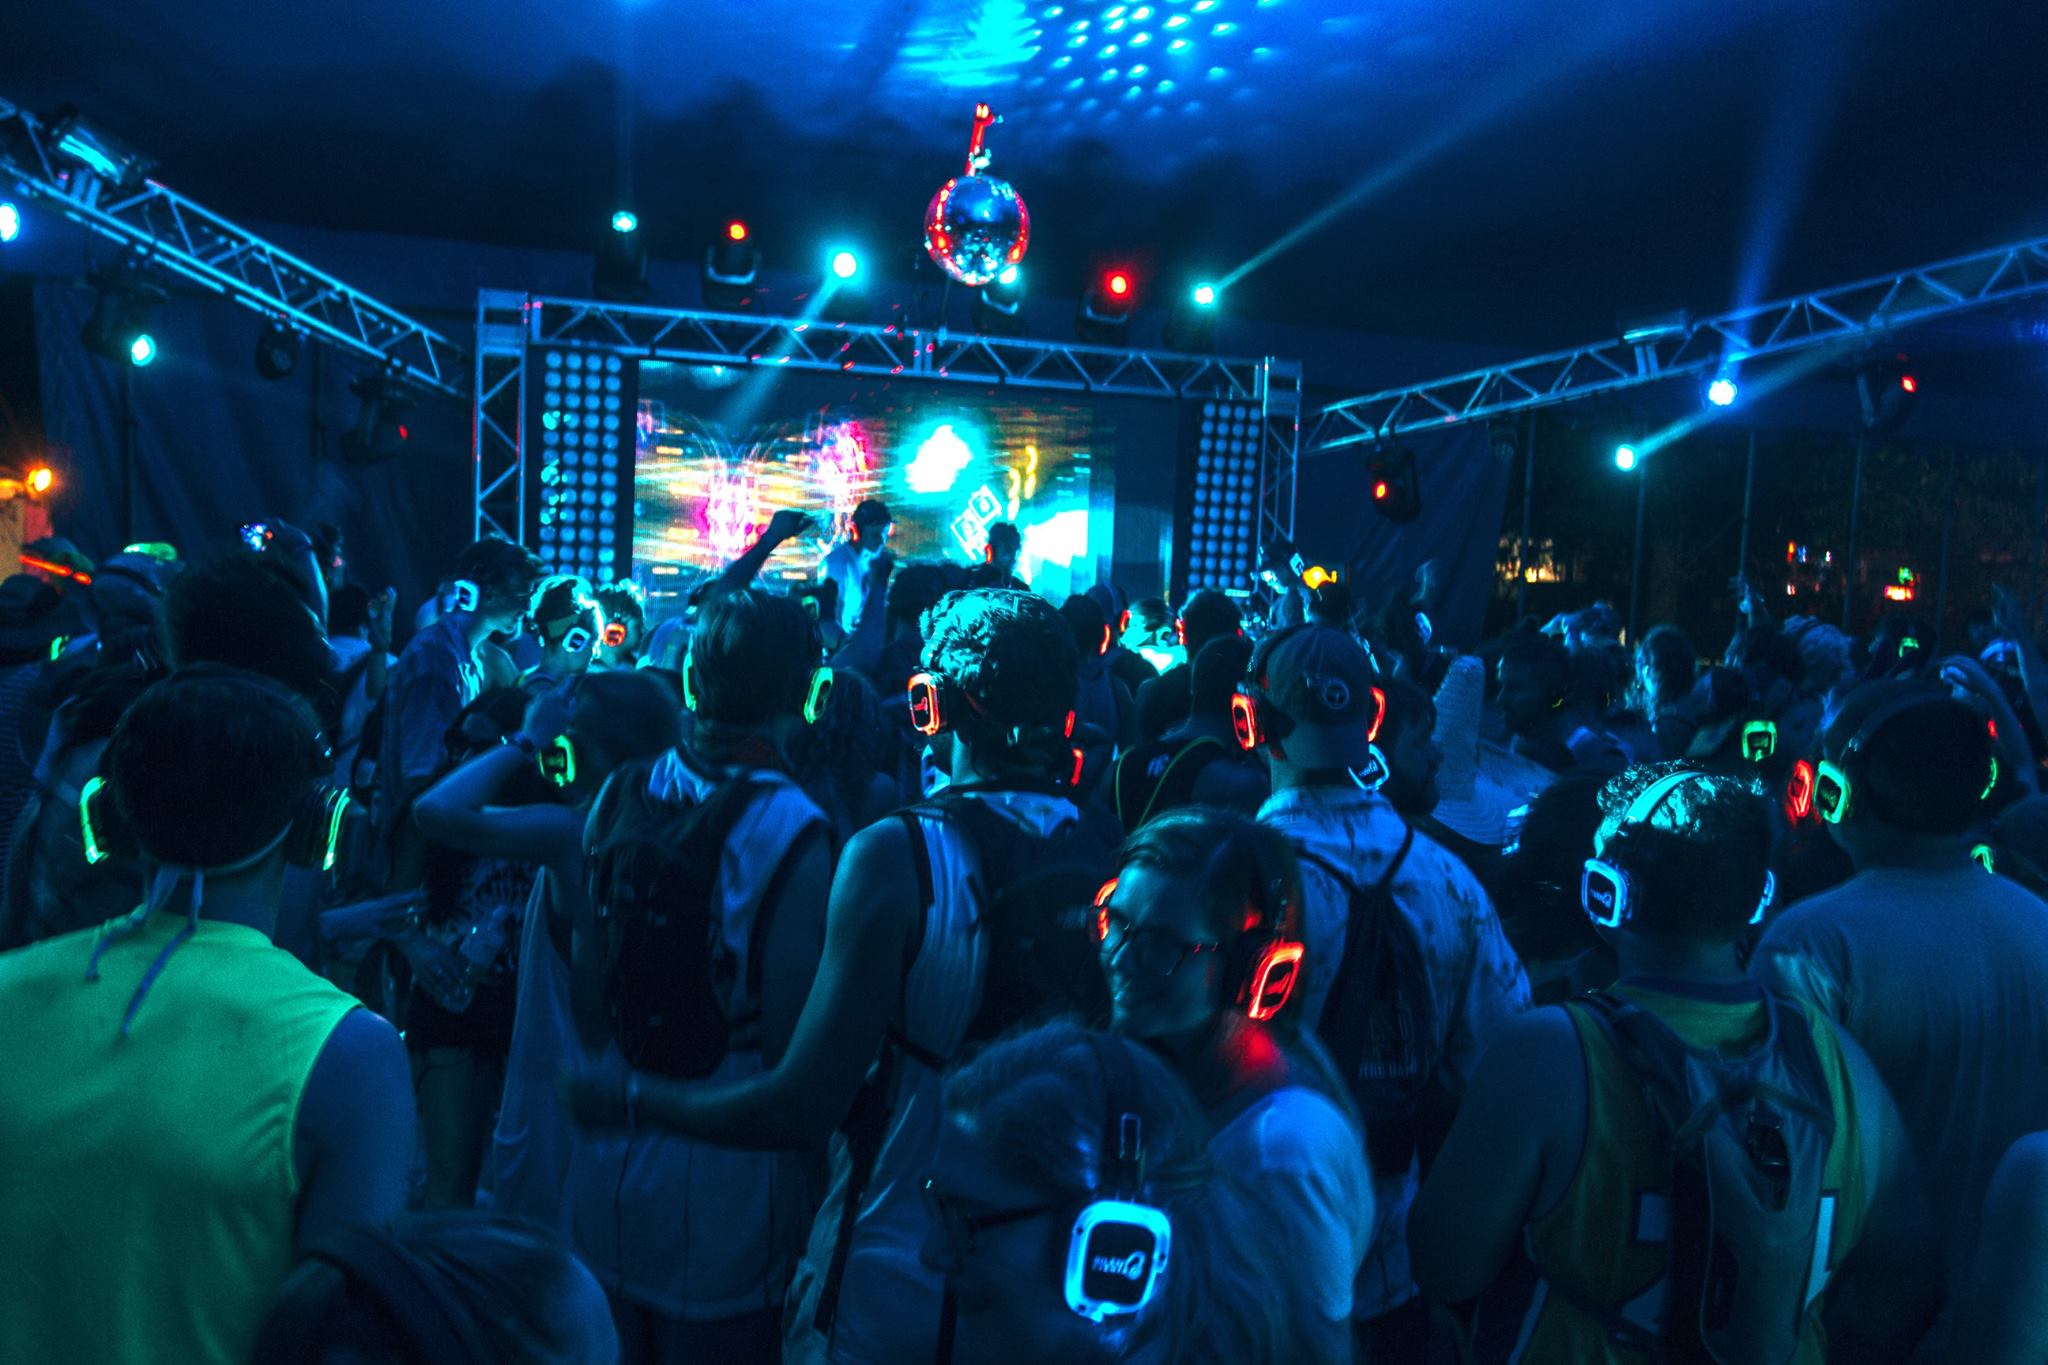 silent disco at your event